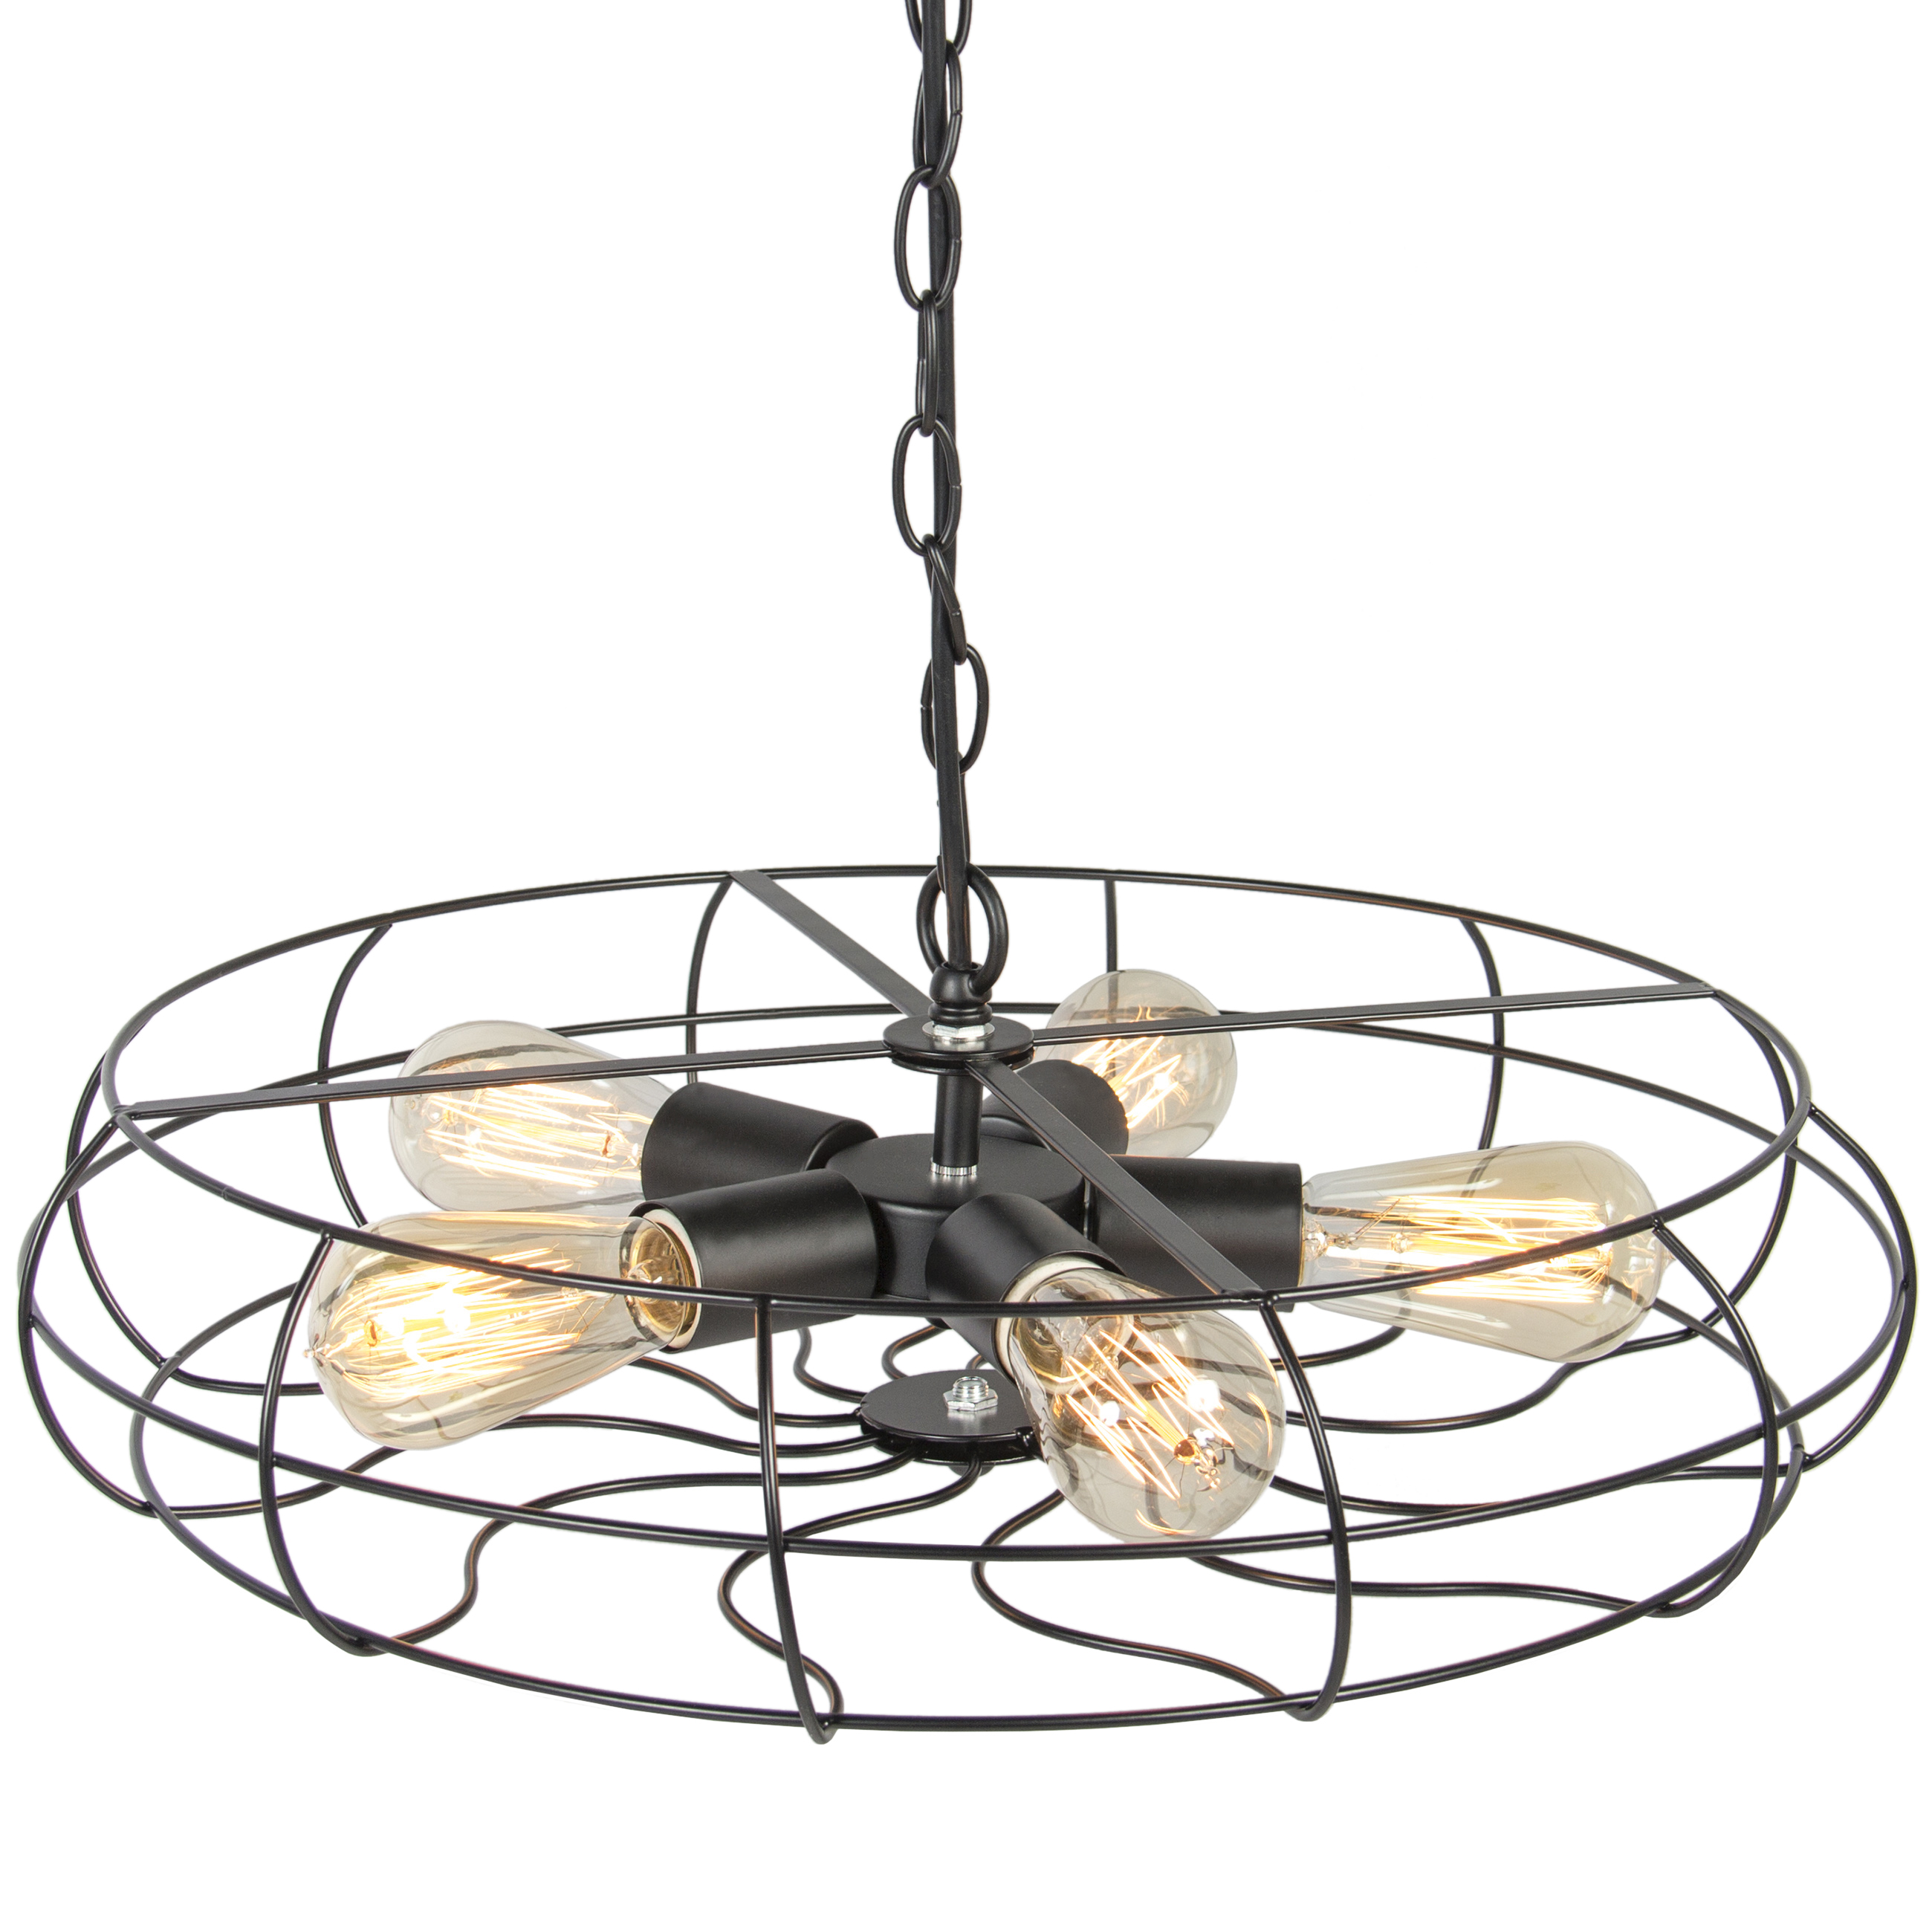 Best Choice Products Industrial Vintage Metal Hanging Ceiling Chandelier Lighting w  5 Lights -Black by Best Choice Products